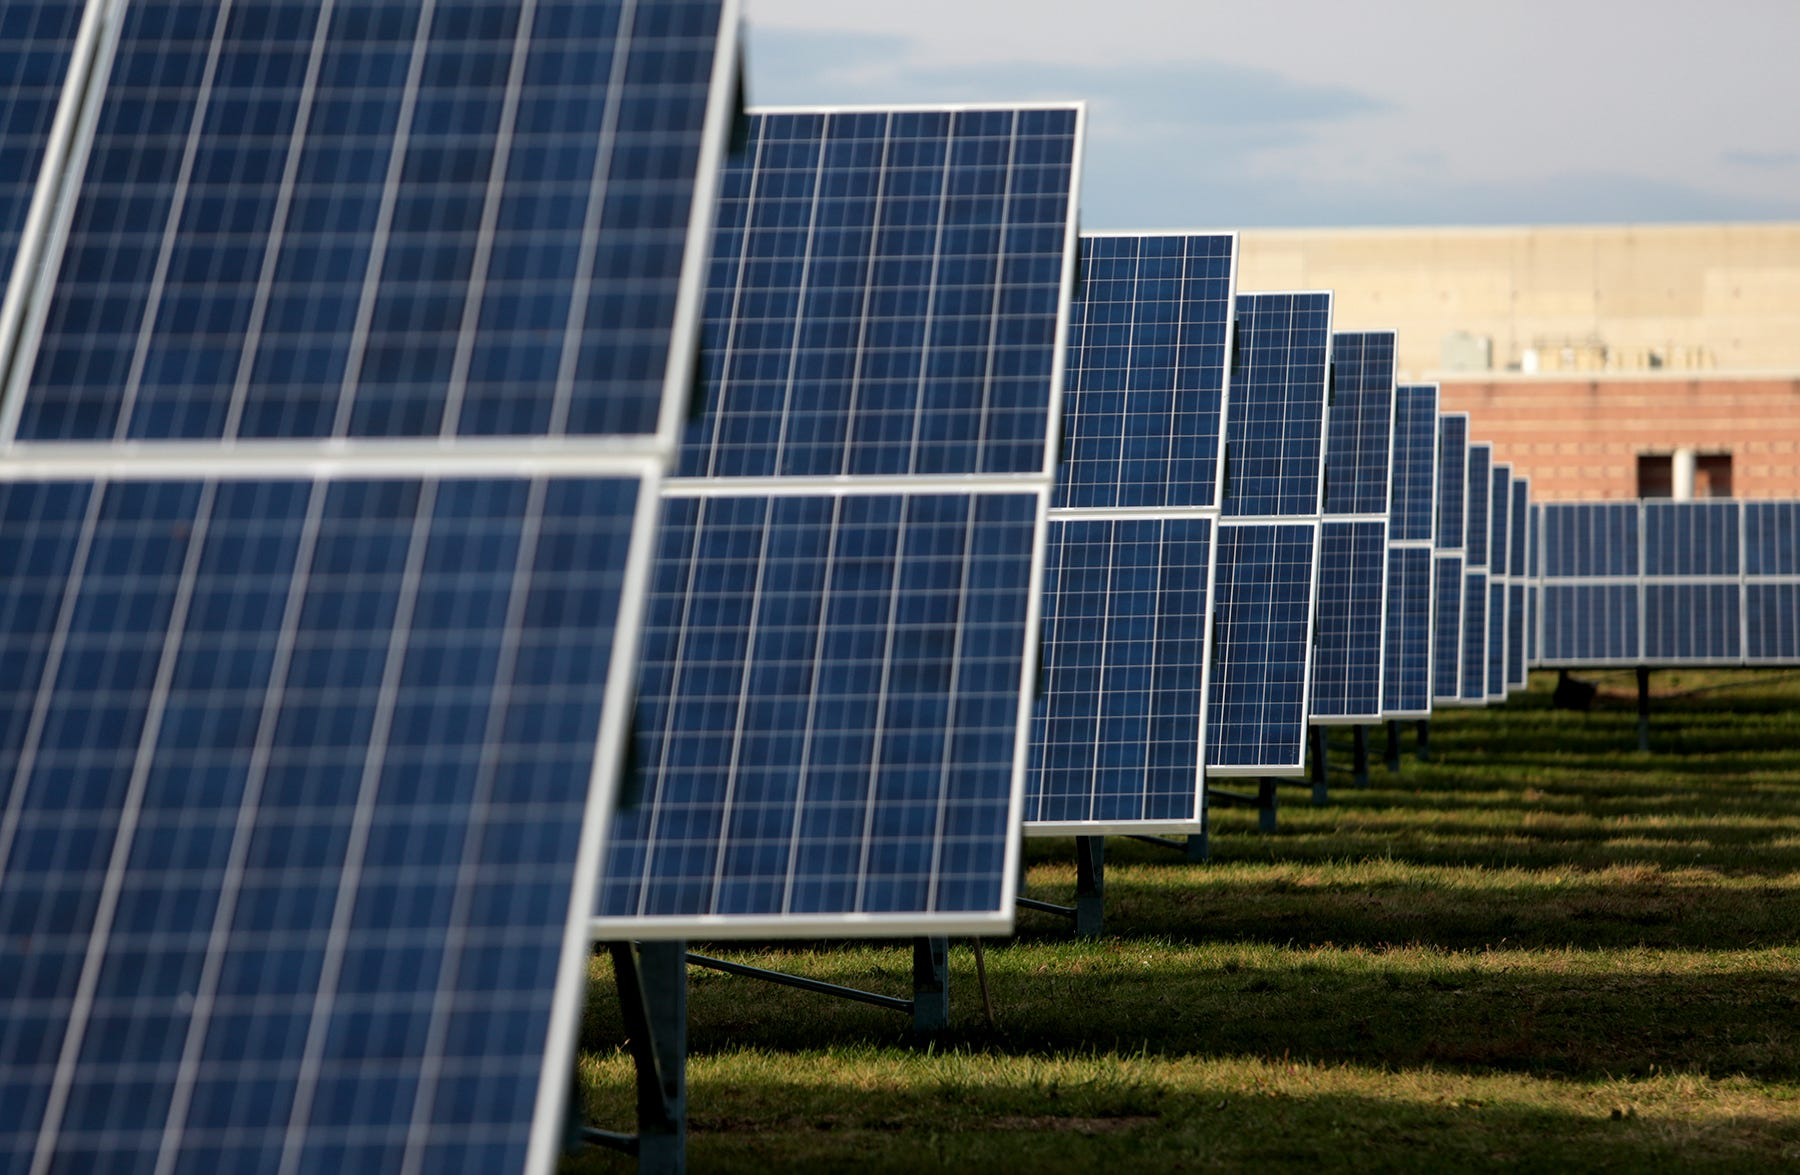 Lakewood hopes to cut costs with new solar panels